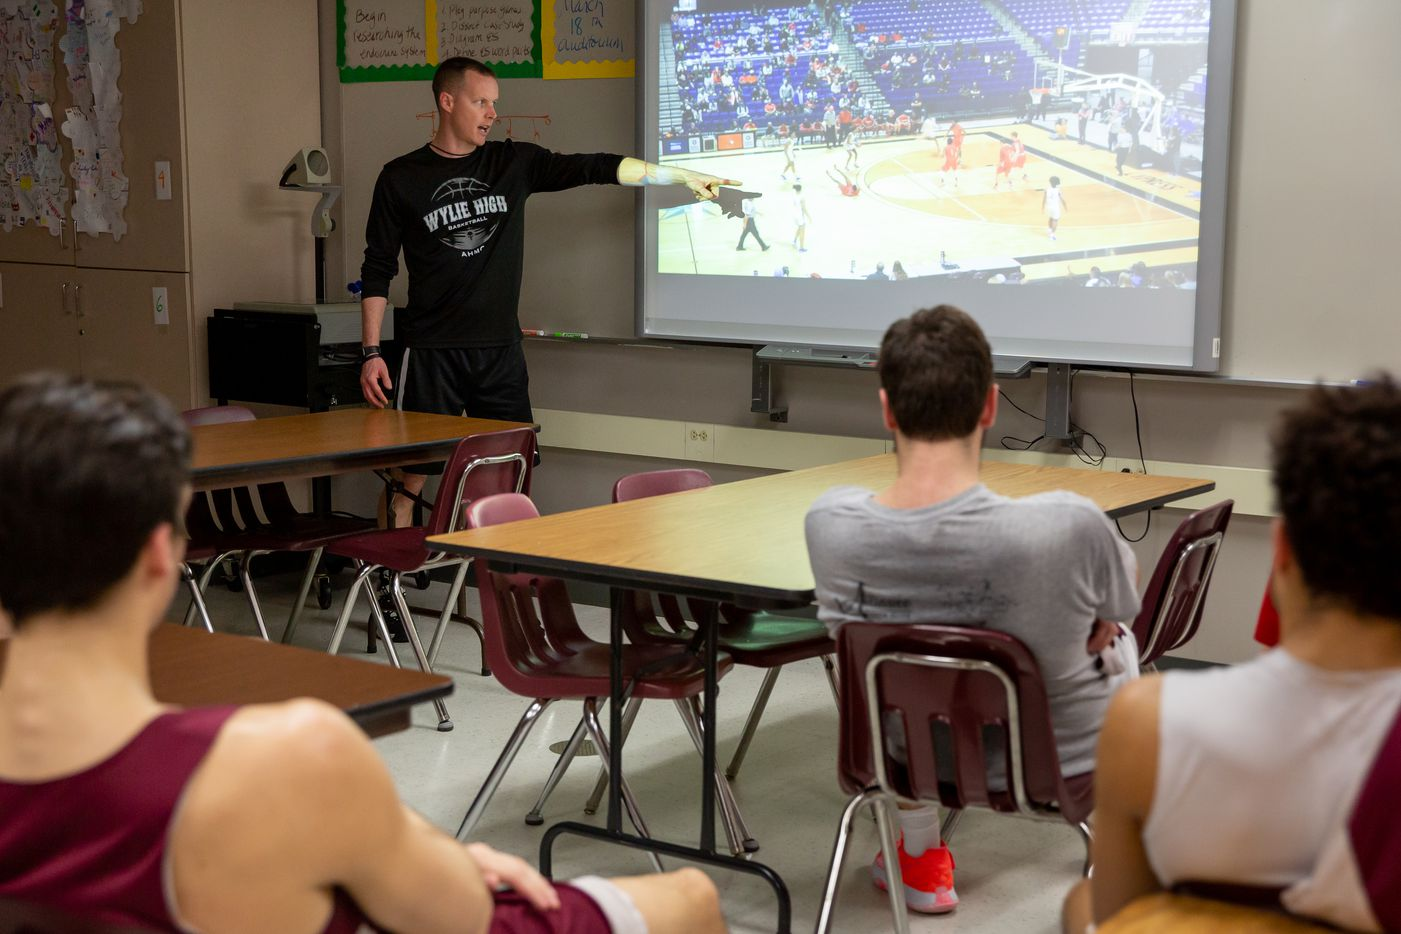 Wylie High School head basketball coach Stephen Pearce reviews clips of opposing teams and strategizes with his players at Wylie High School on March 11, 2020 in Wylie, Texas. (Kara Dry/Special Contributor)